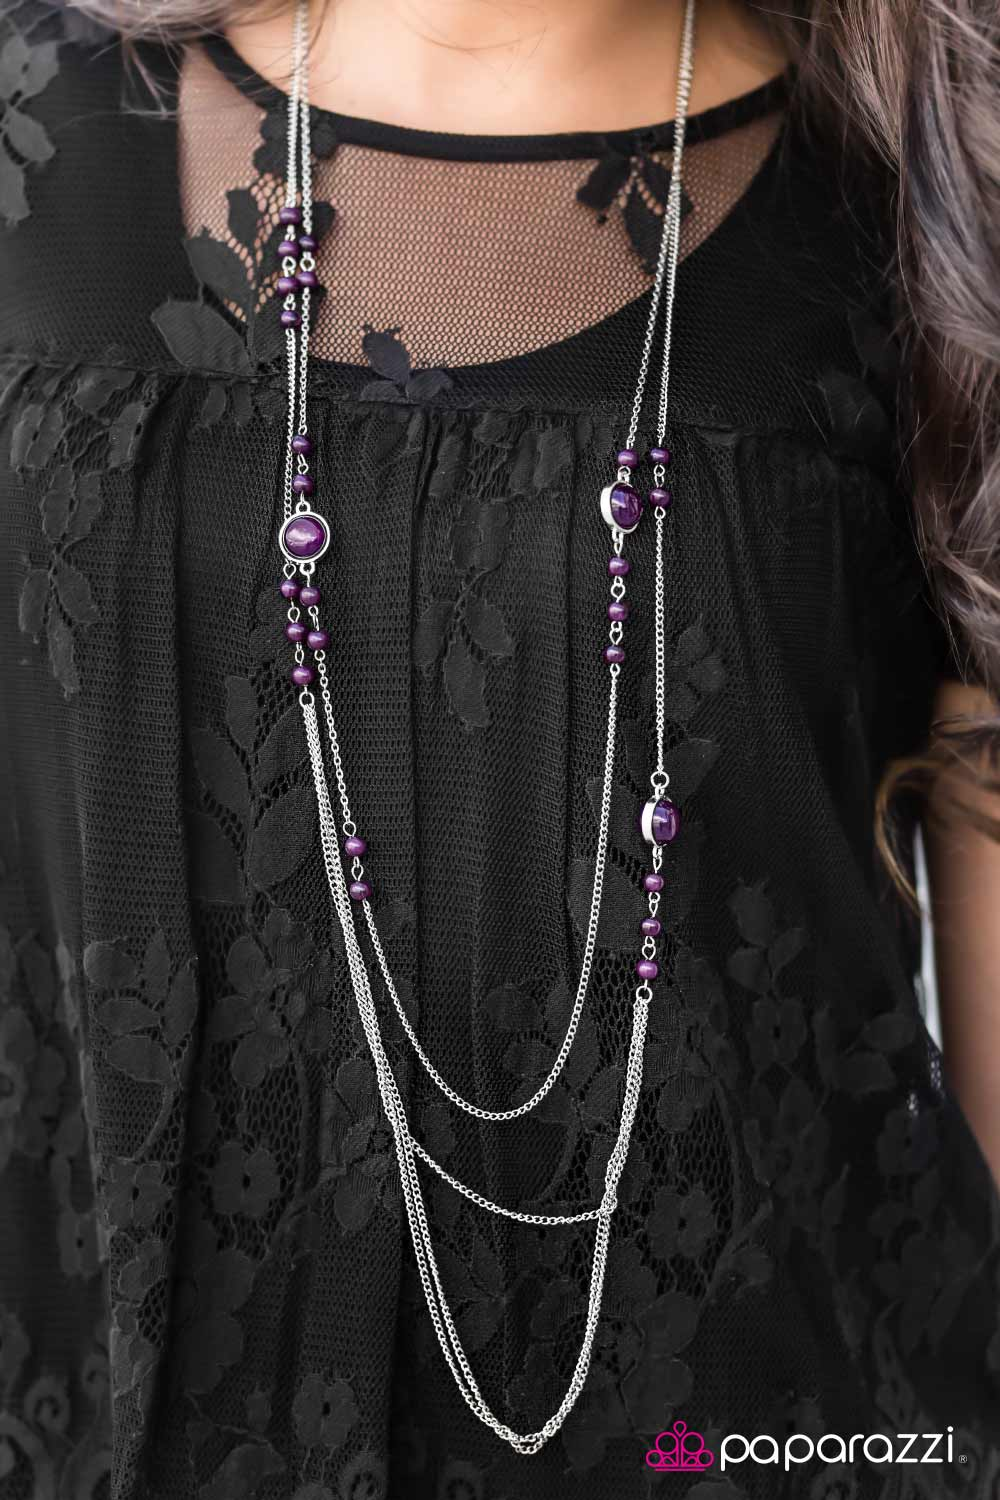 Wide Open Skies - Purple - Paparazzi necklace